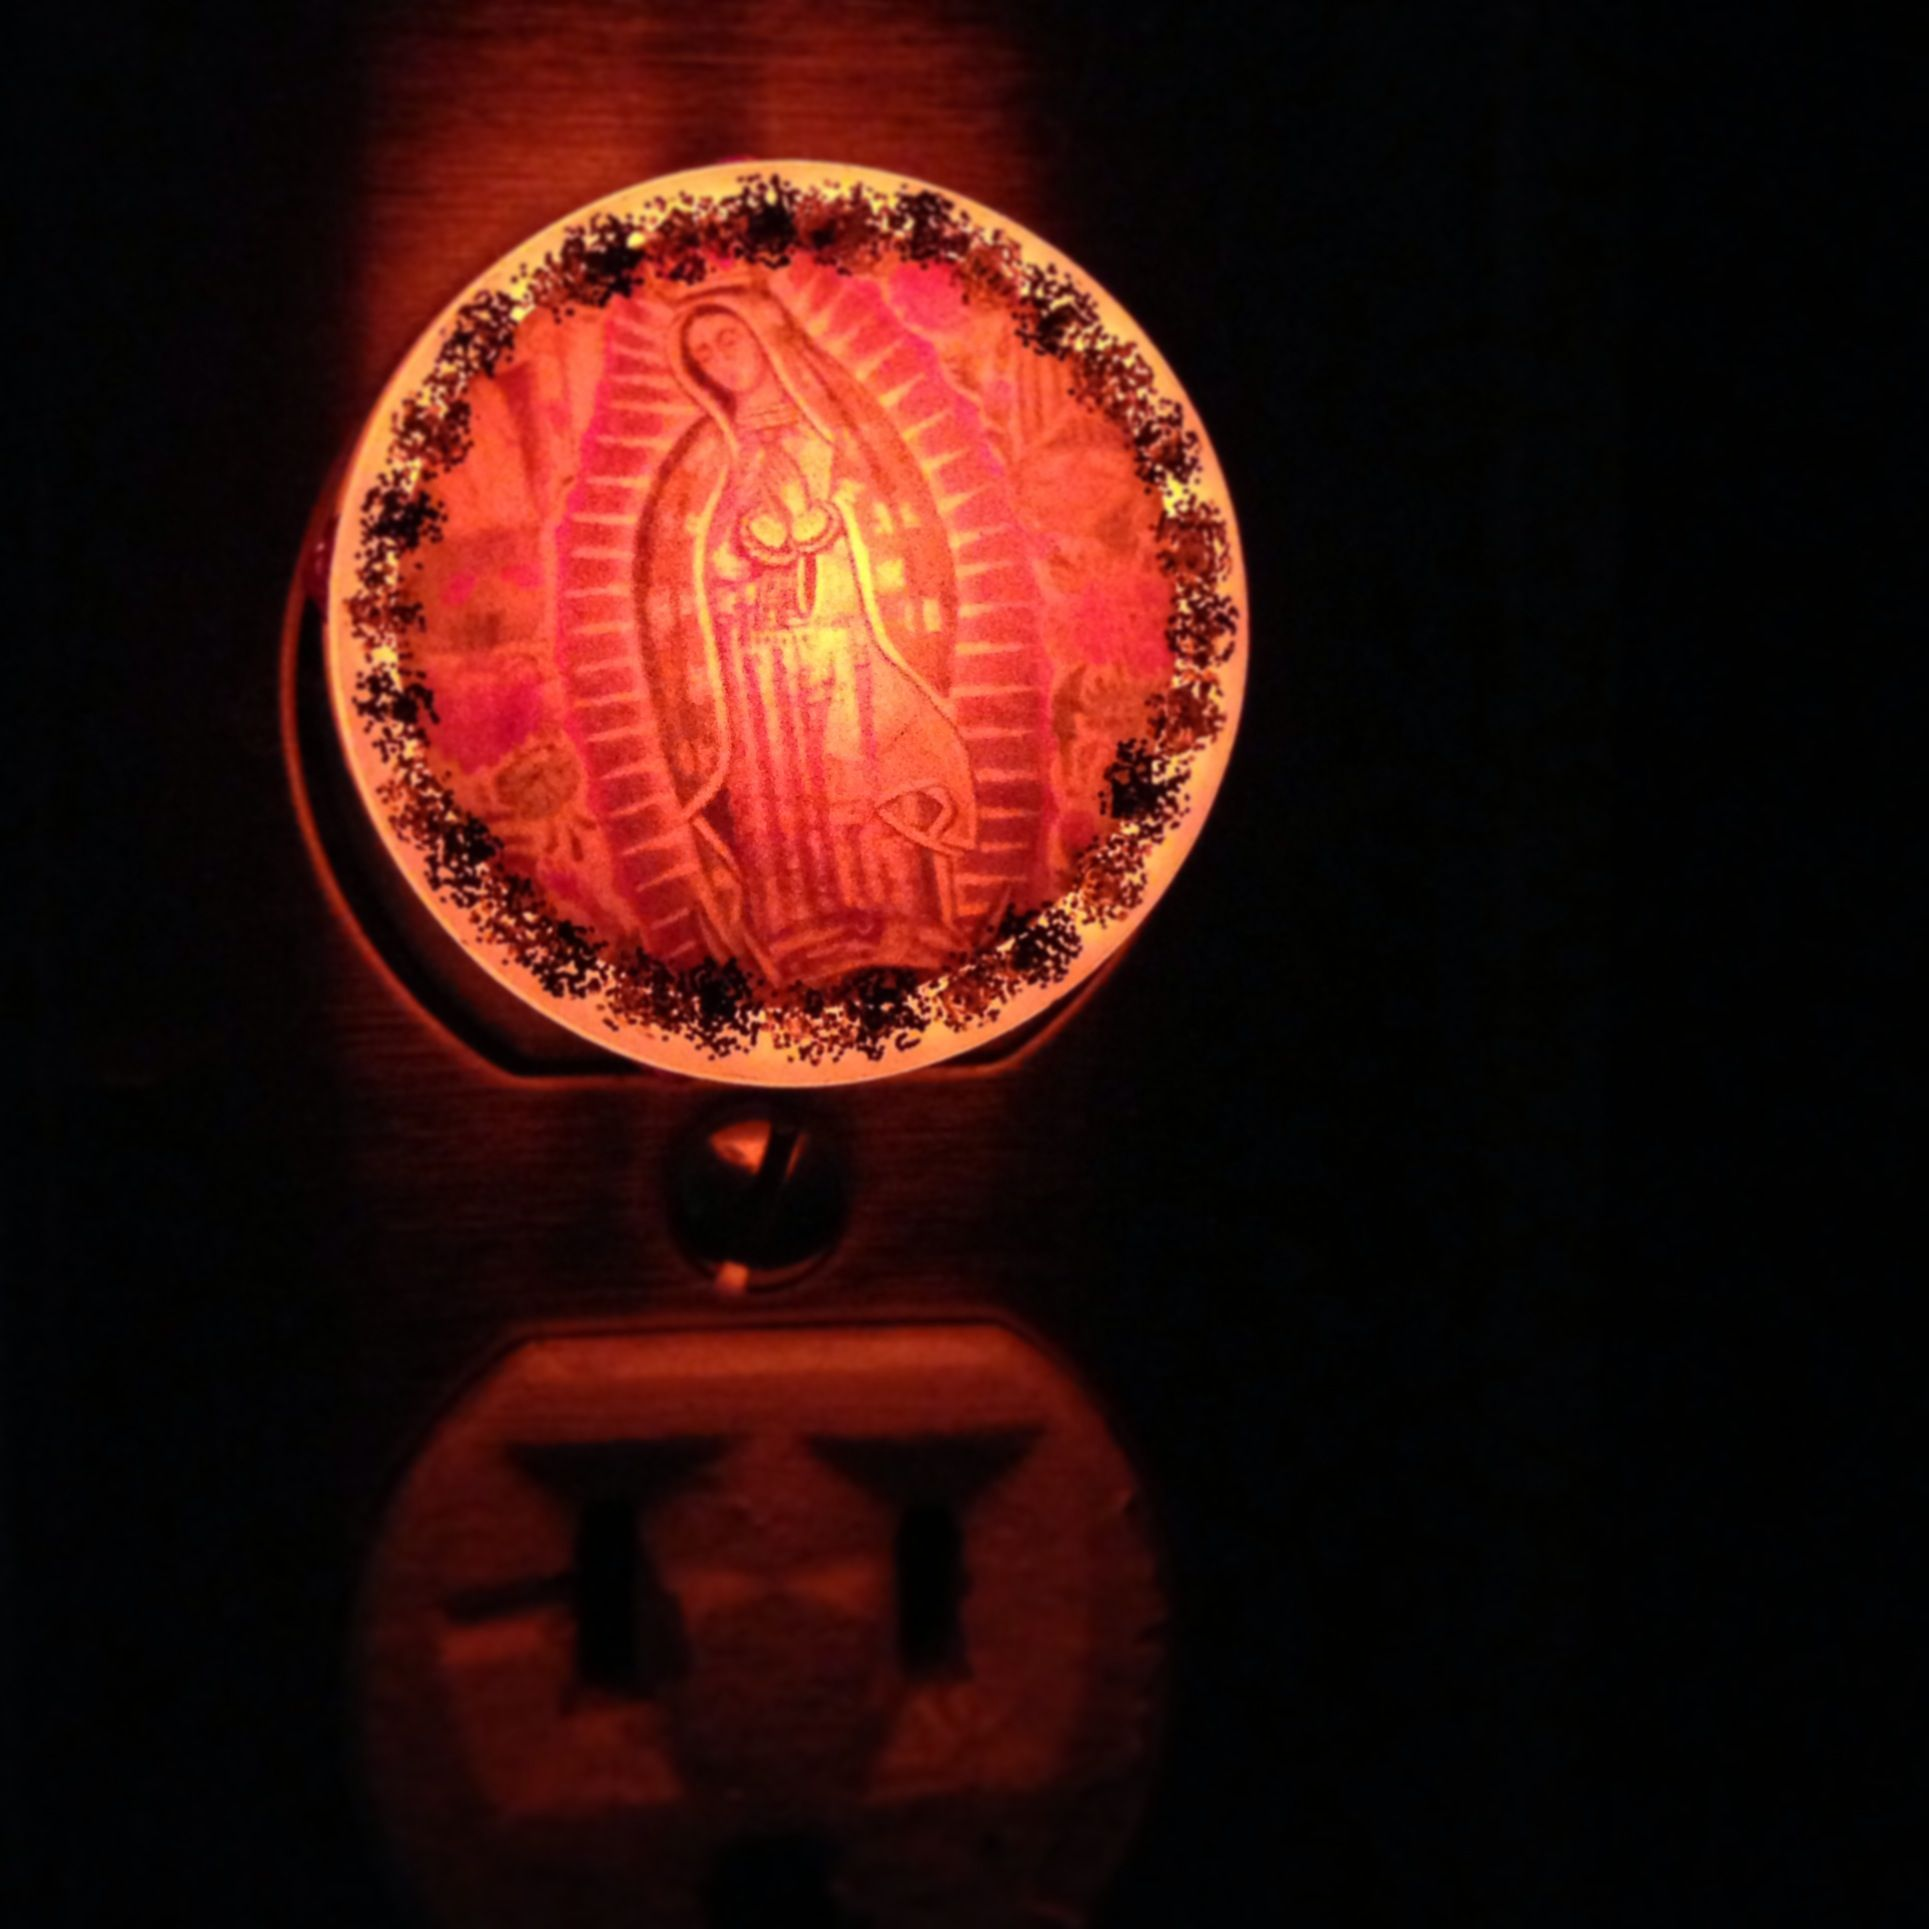 La virgen de guadalupe night light 12 like a prayer 3 la virgen de guadalupe night light 12 fandeluxe Image collections